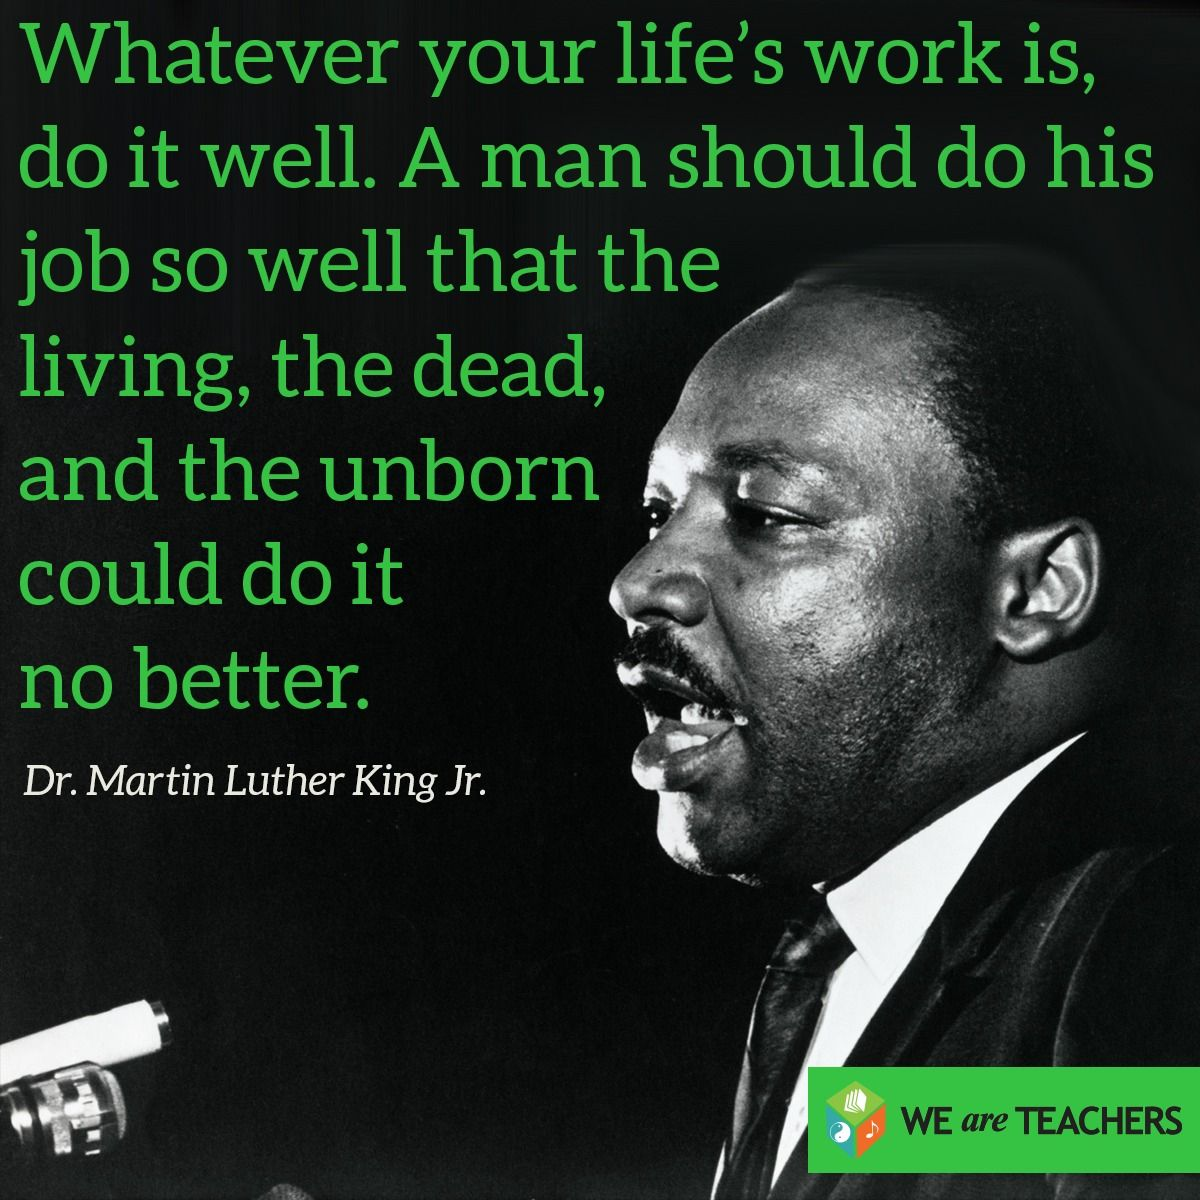 Martin Luther King Jr quote. Martin luther king jr